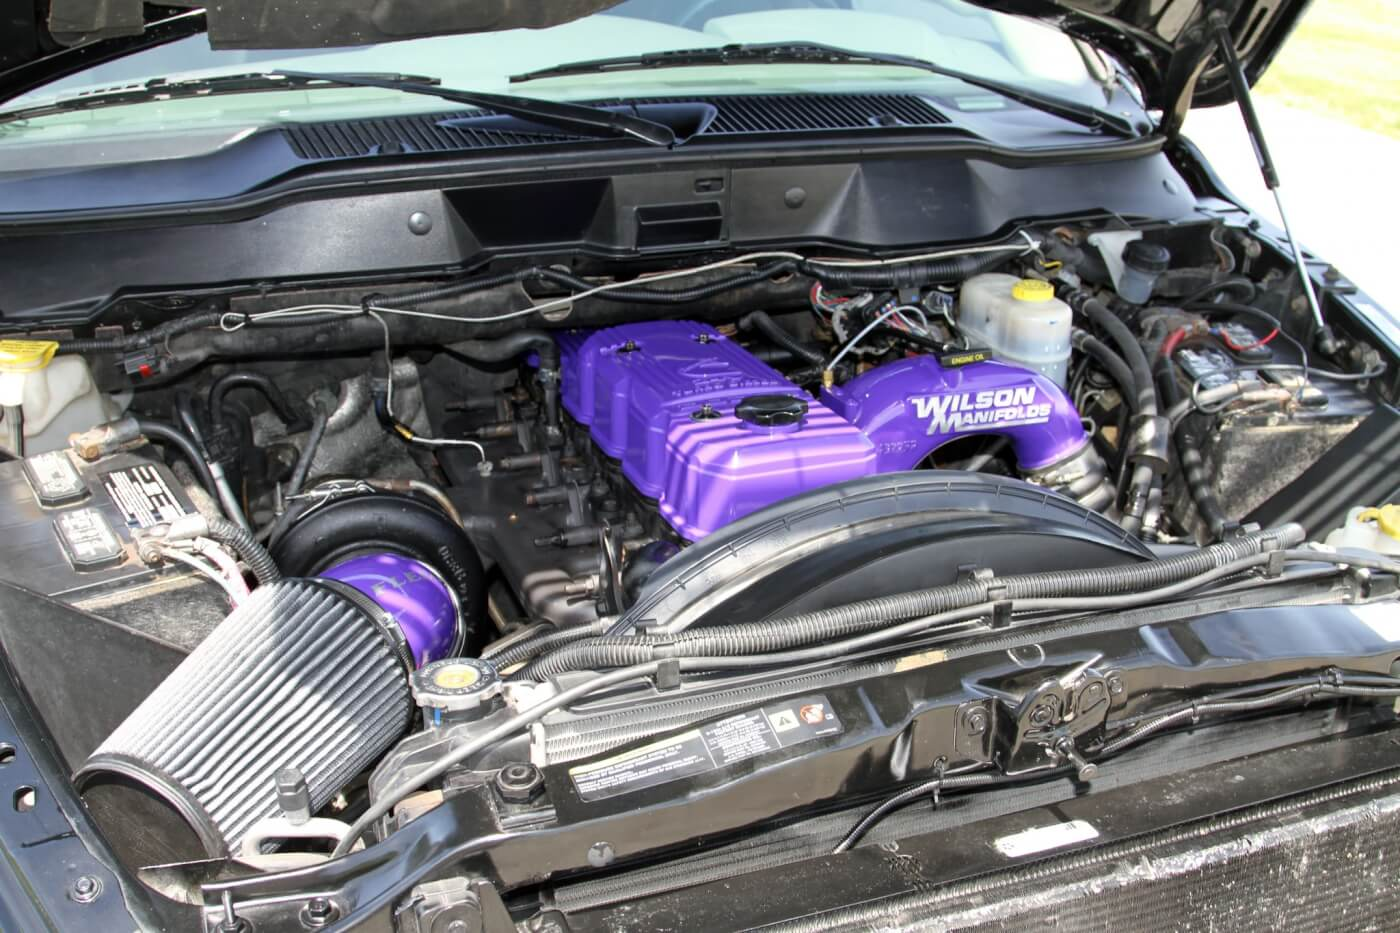 Lifting the hood, you'll find the bright purple paint highlighting the intake manifold, valve cover and turbo intake.